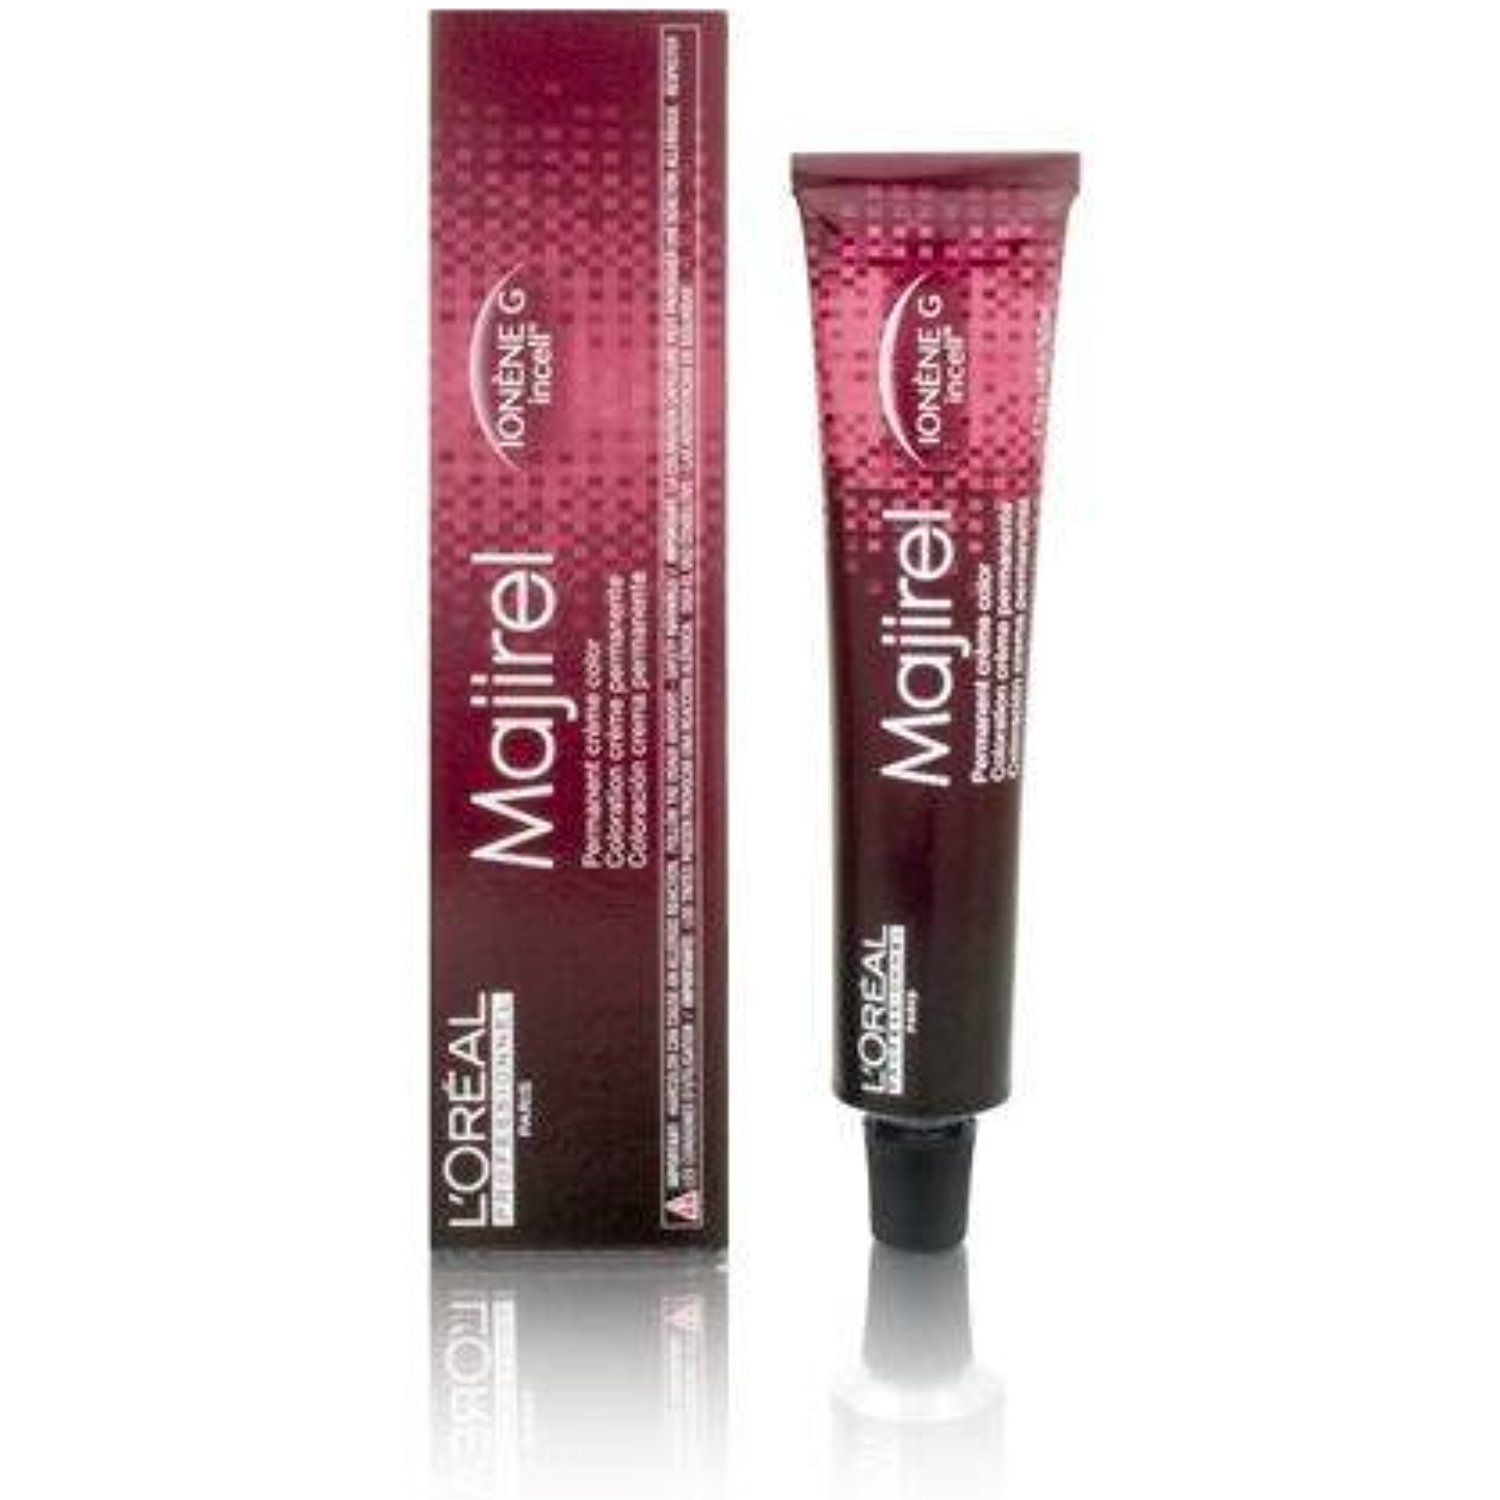 L Oreal Majirel Color Chart Hair Color Hair Color Shades Hair Color Chart